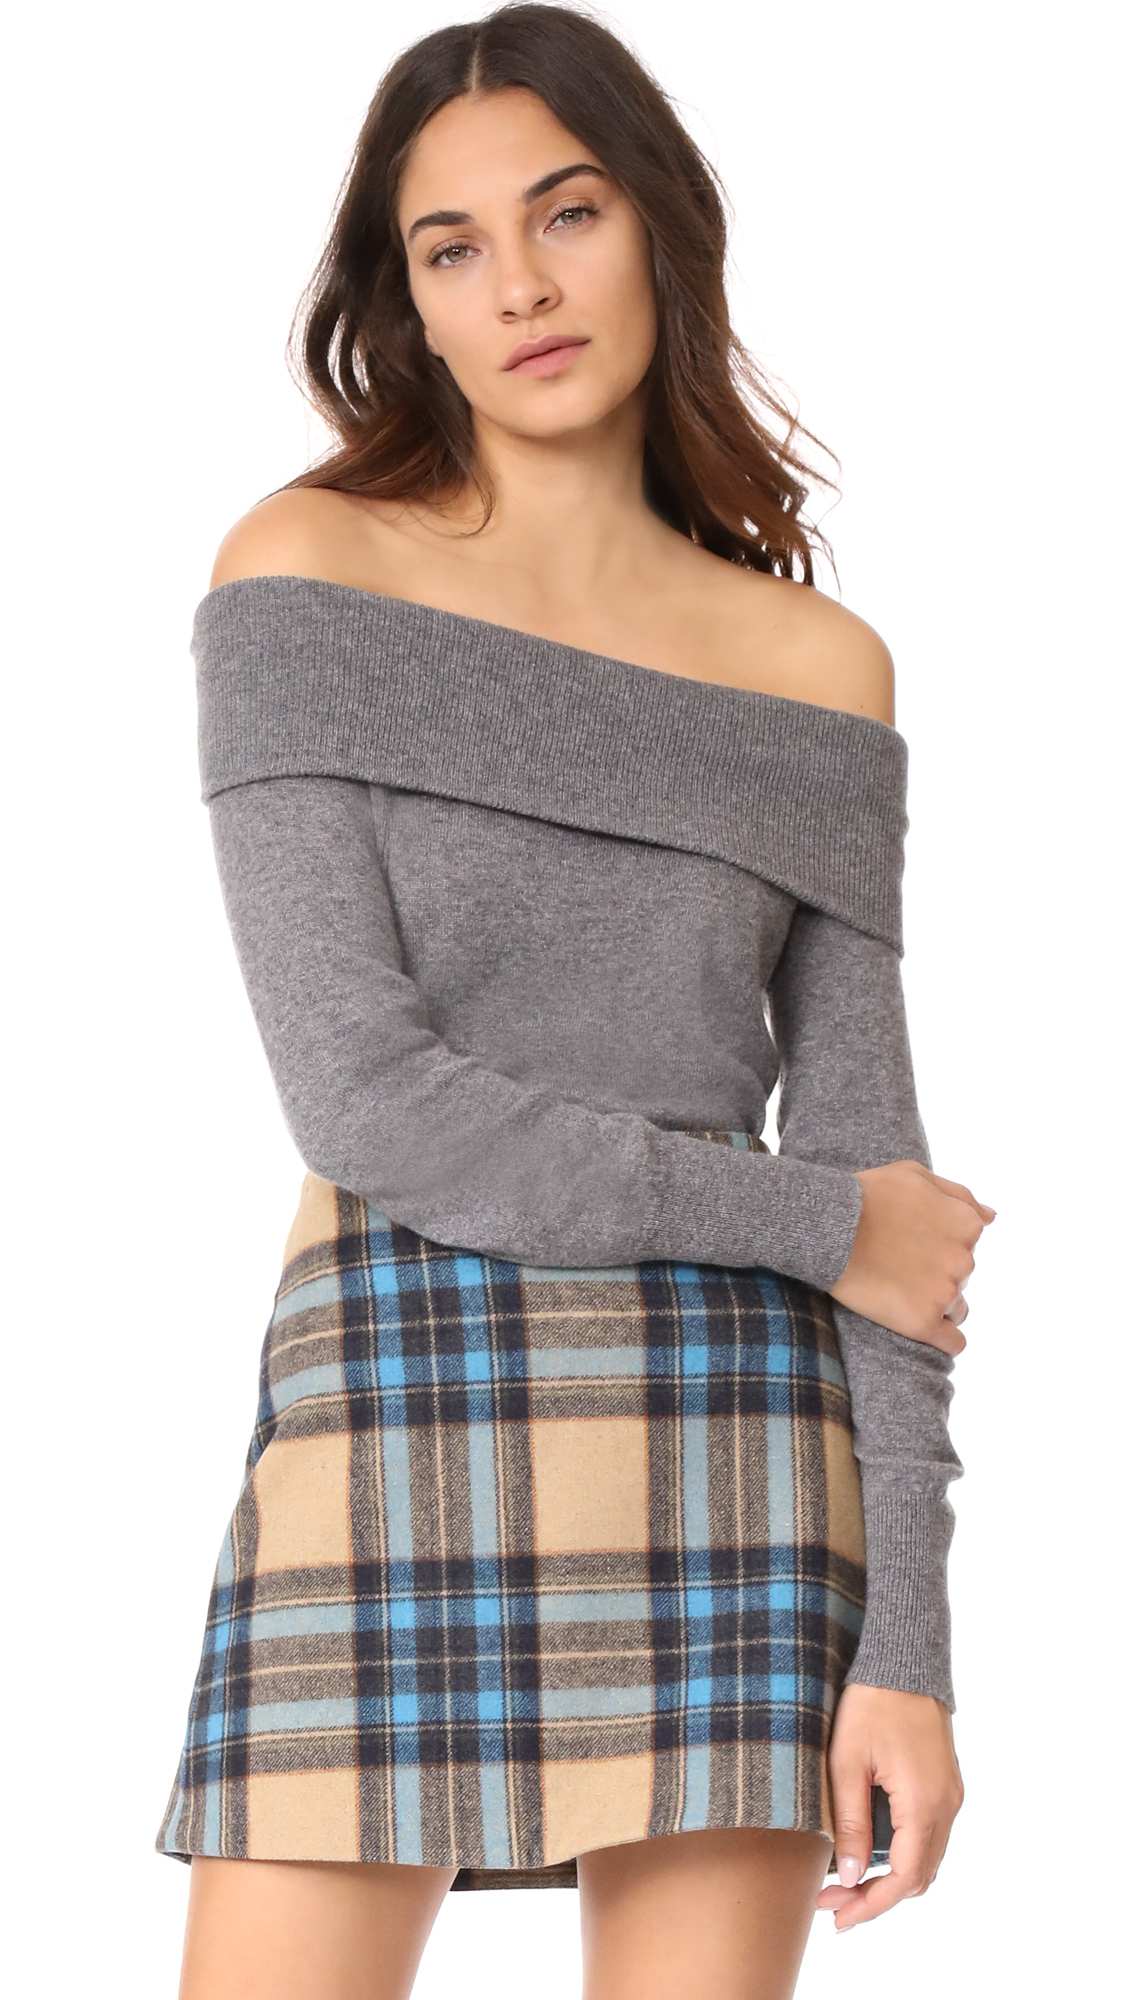 cupcakes and cashmere Roderick Cashmere Off Shoulder Sweater - Medium Heather Grey